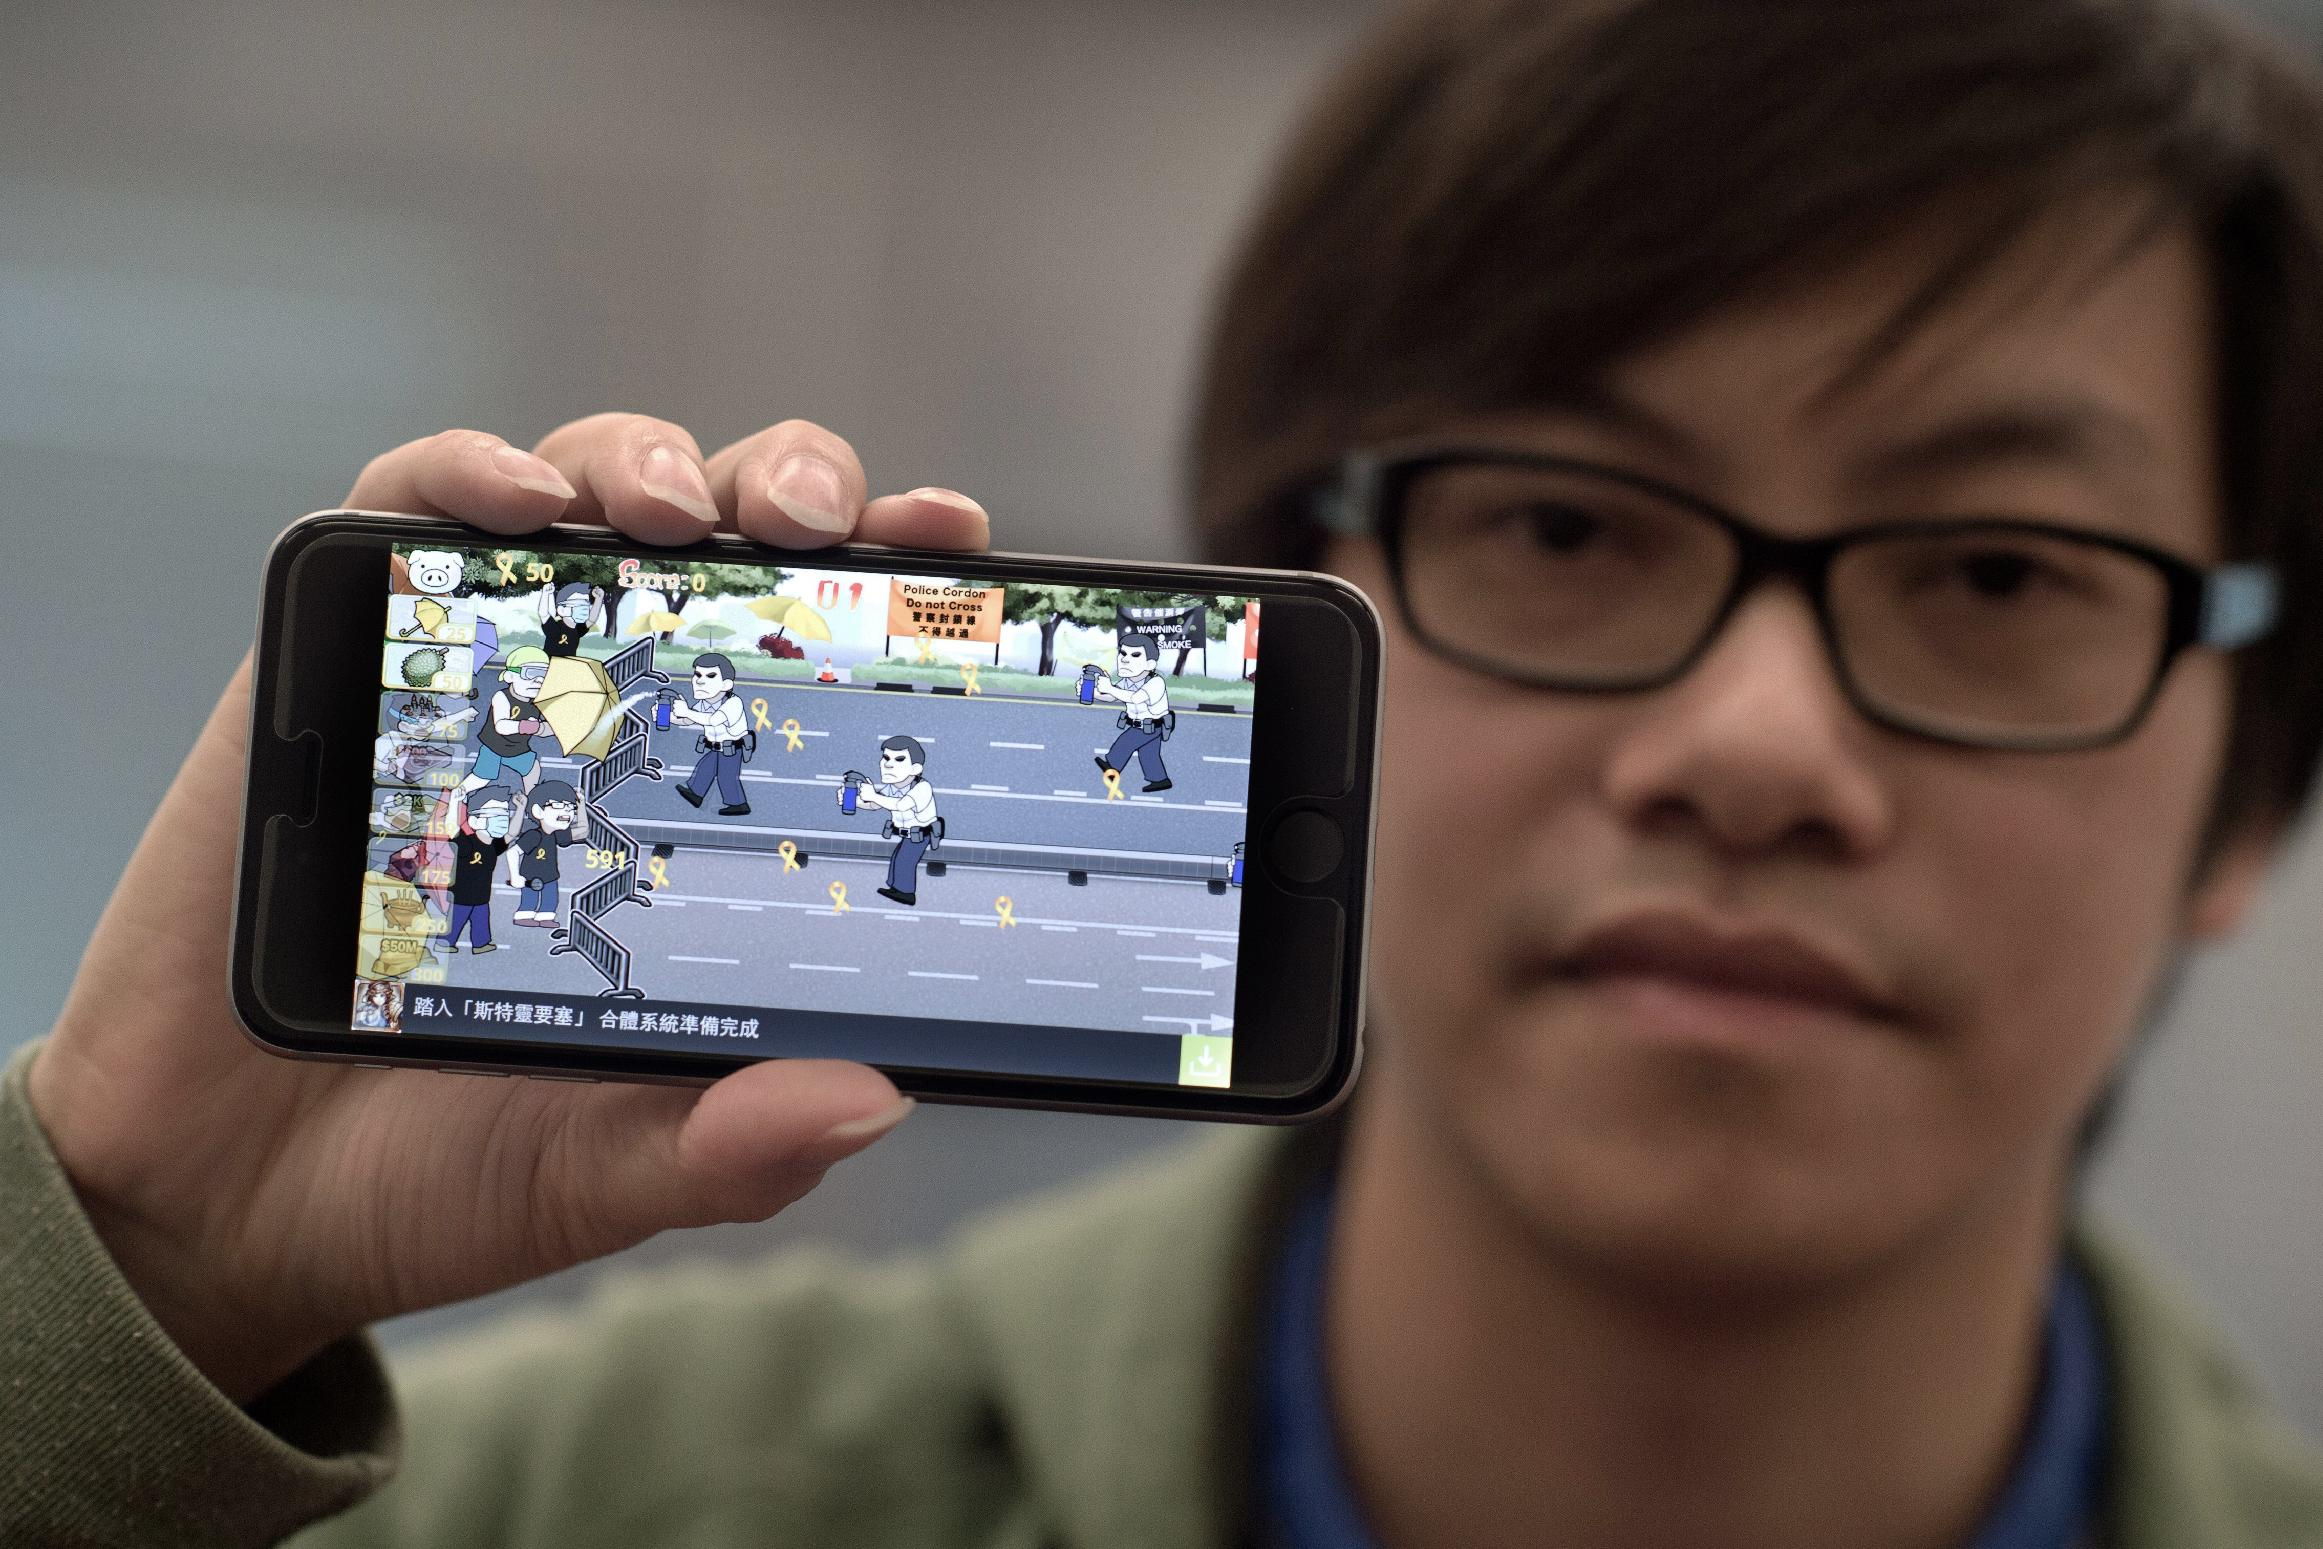 Hong Kong's Umbrella Movement gets computer game makeover